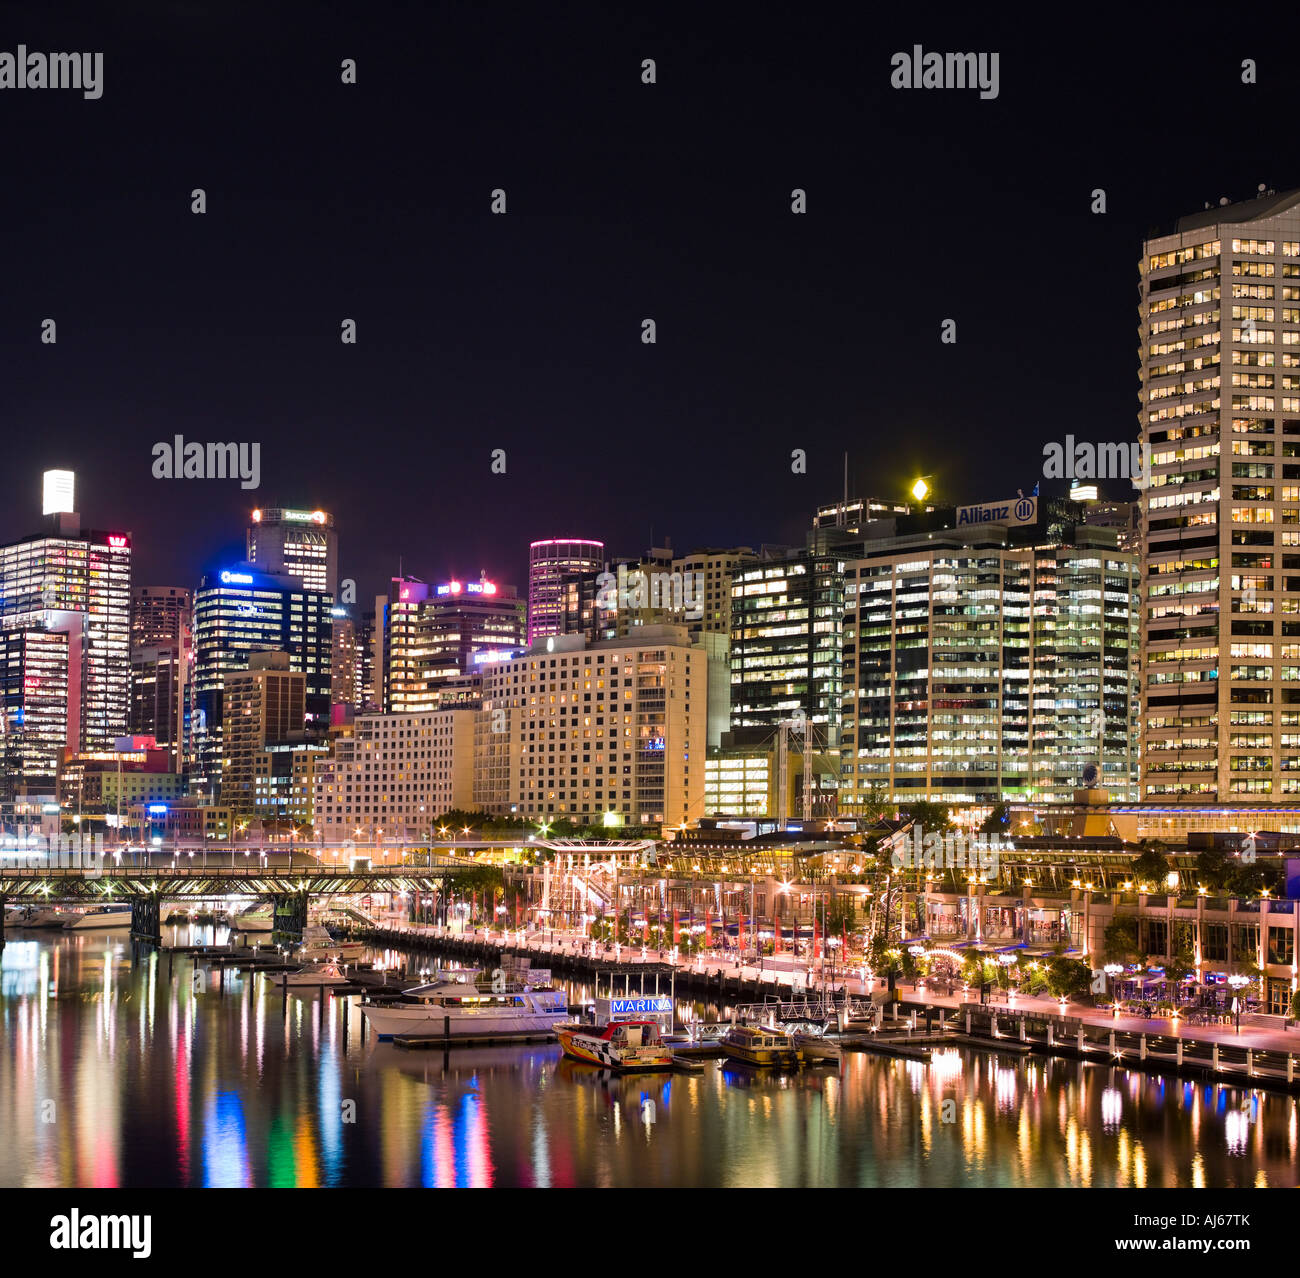 Darling Harbour Sydney Photo Stock